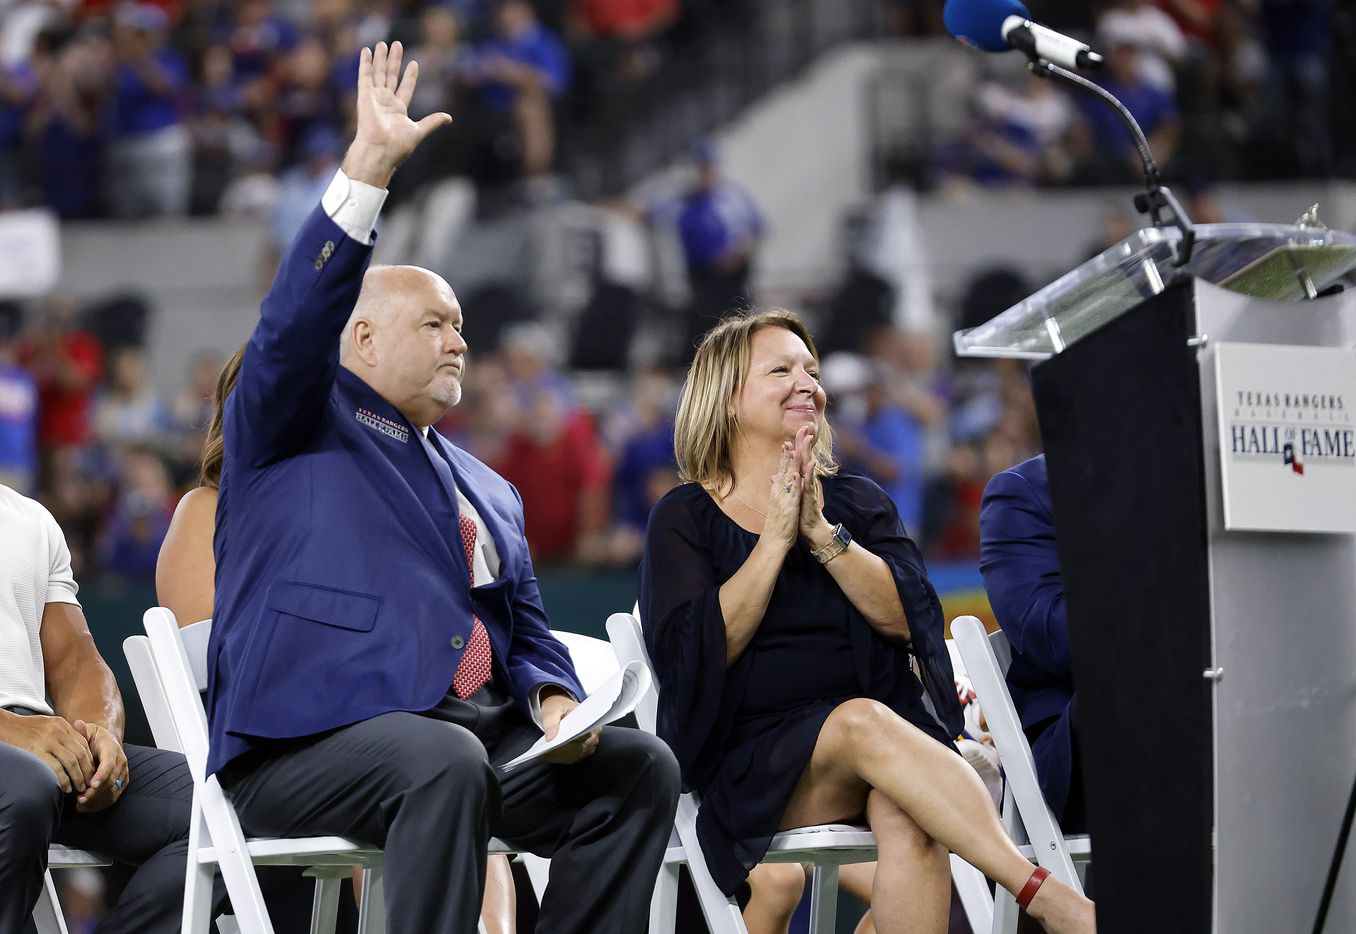 Texas Rangers executive vice president and public address announcer Chuck Morgan waves t the crowd after delivering his Texas Rangers Baseball Hall of Fame induction speech at Globe Life Field in Arlington, Saturday, August 14, 2021. His wife Starr is by his side. (Tom Fox/The Dallas Morning News)